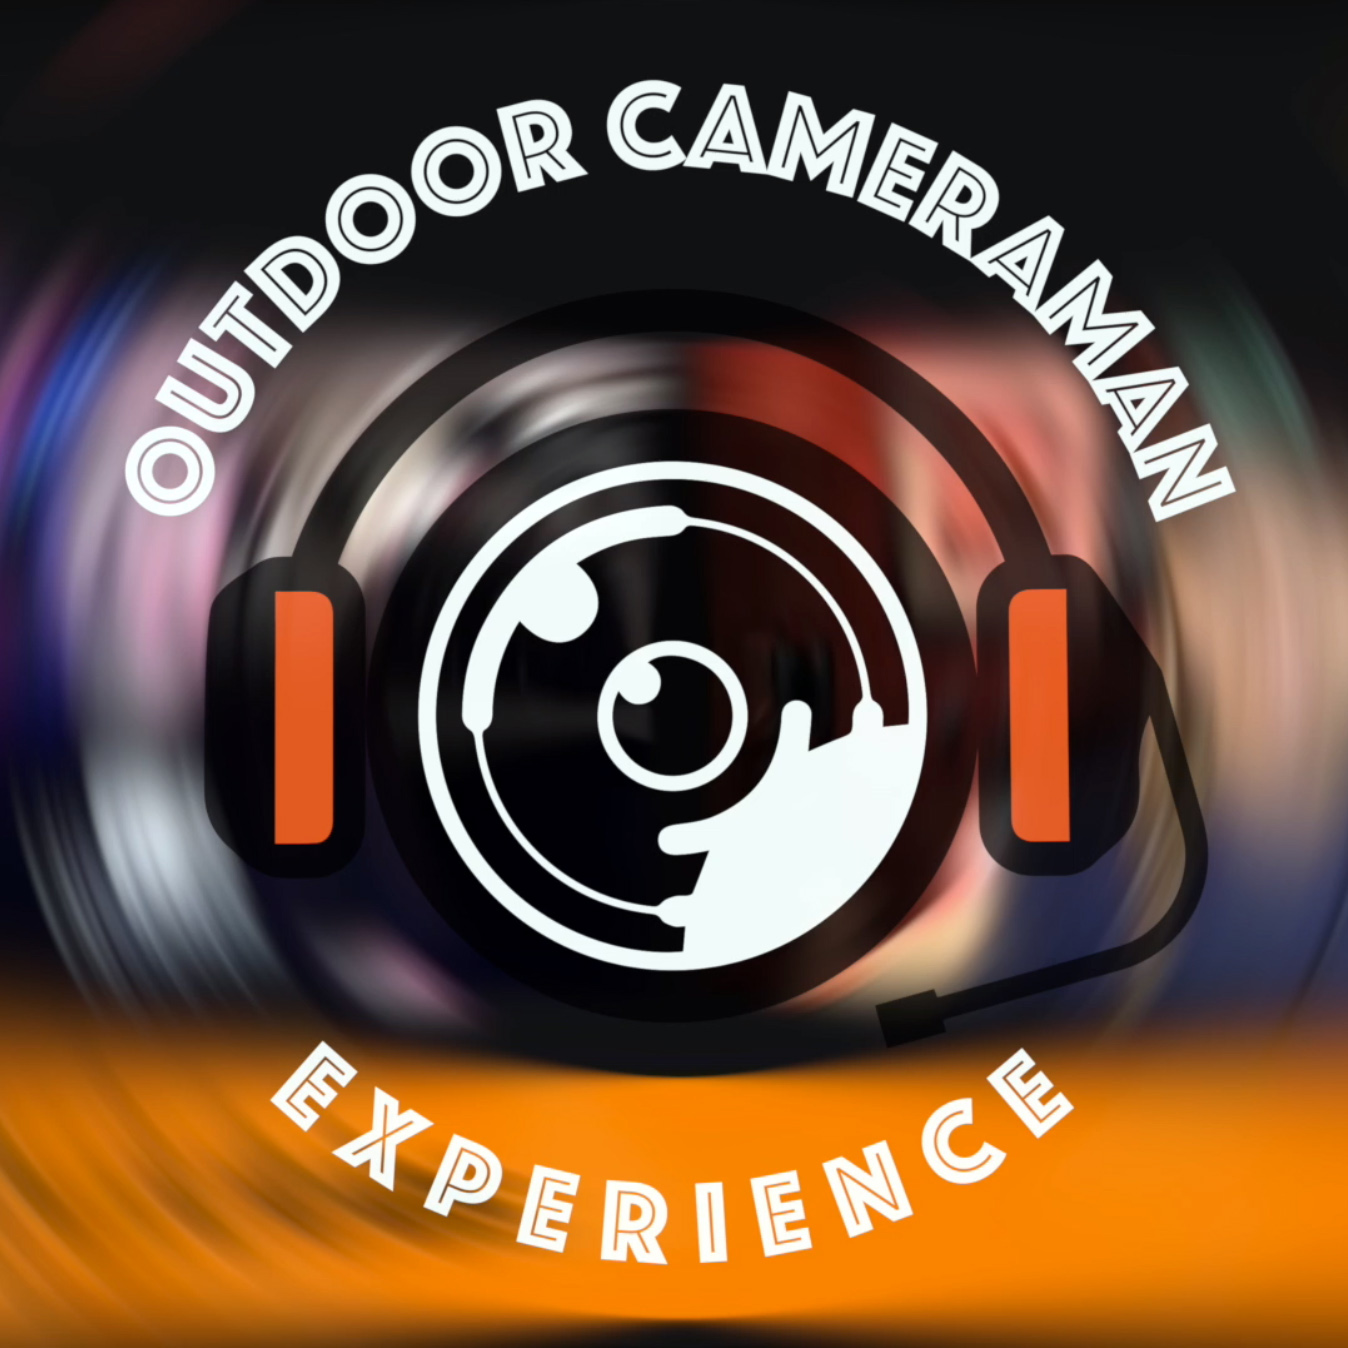 Outdoor Cameraman Experience Episode 4 with Guest Lee Kjos